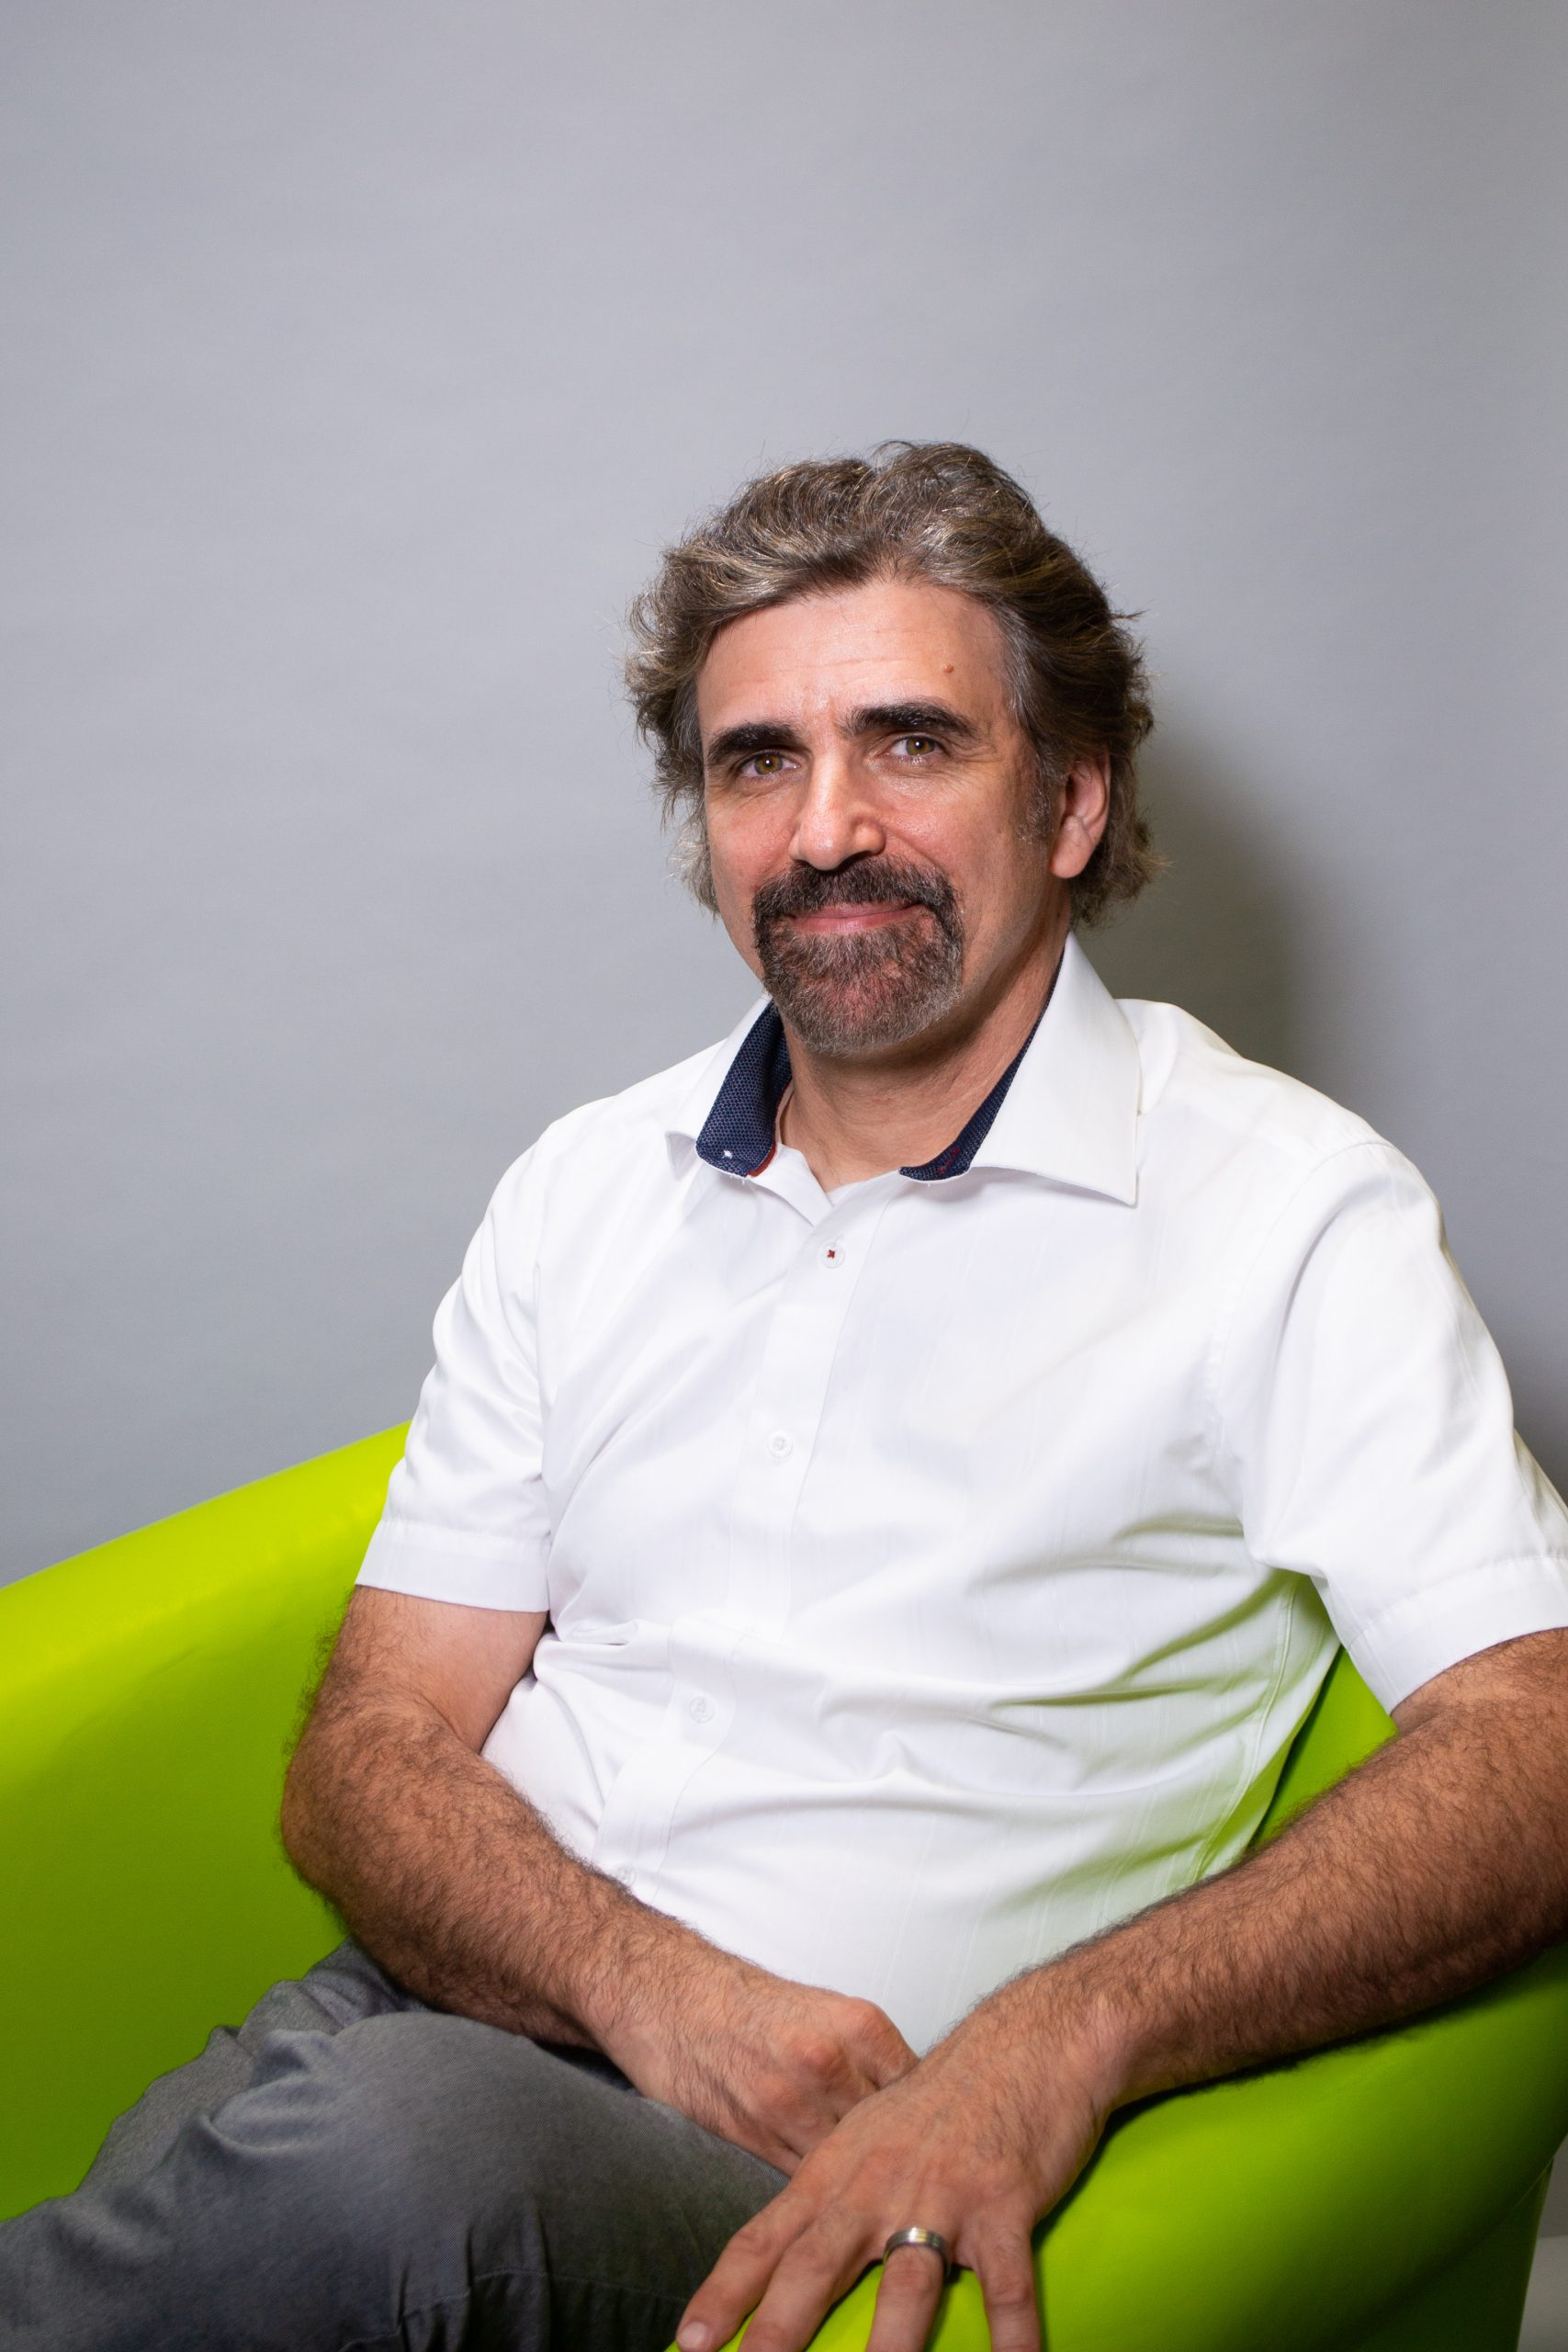 Tony Csaba sitting in a green chair in front of a grey background, smiling at the camera